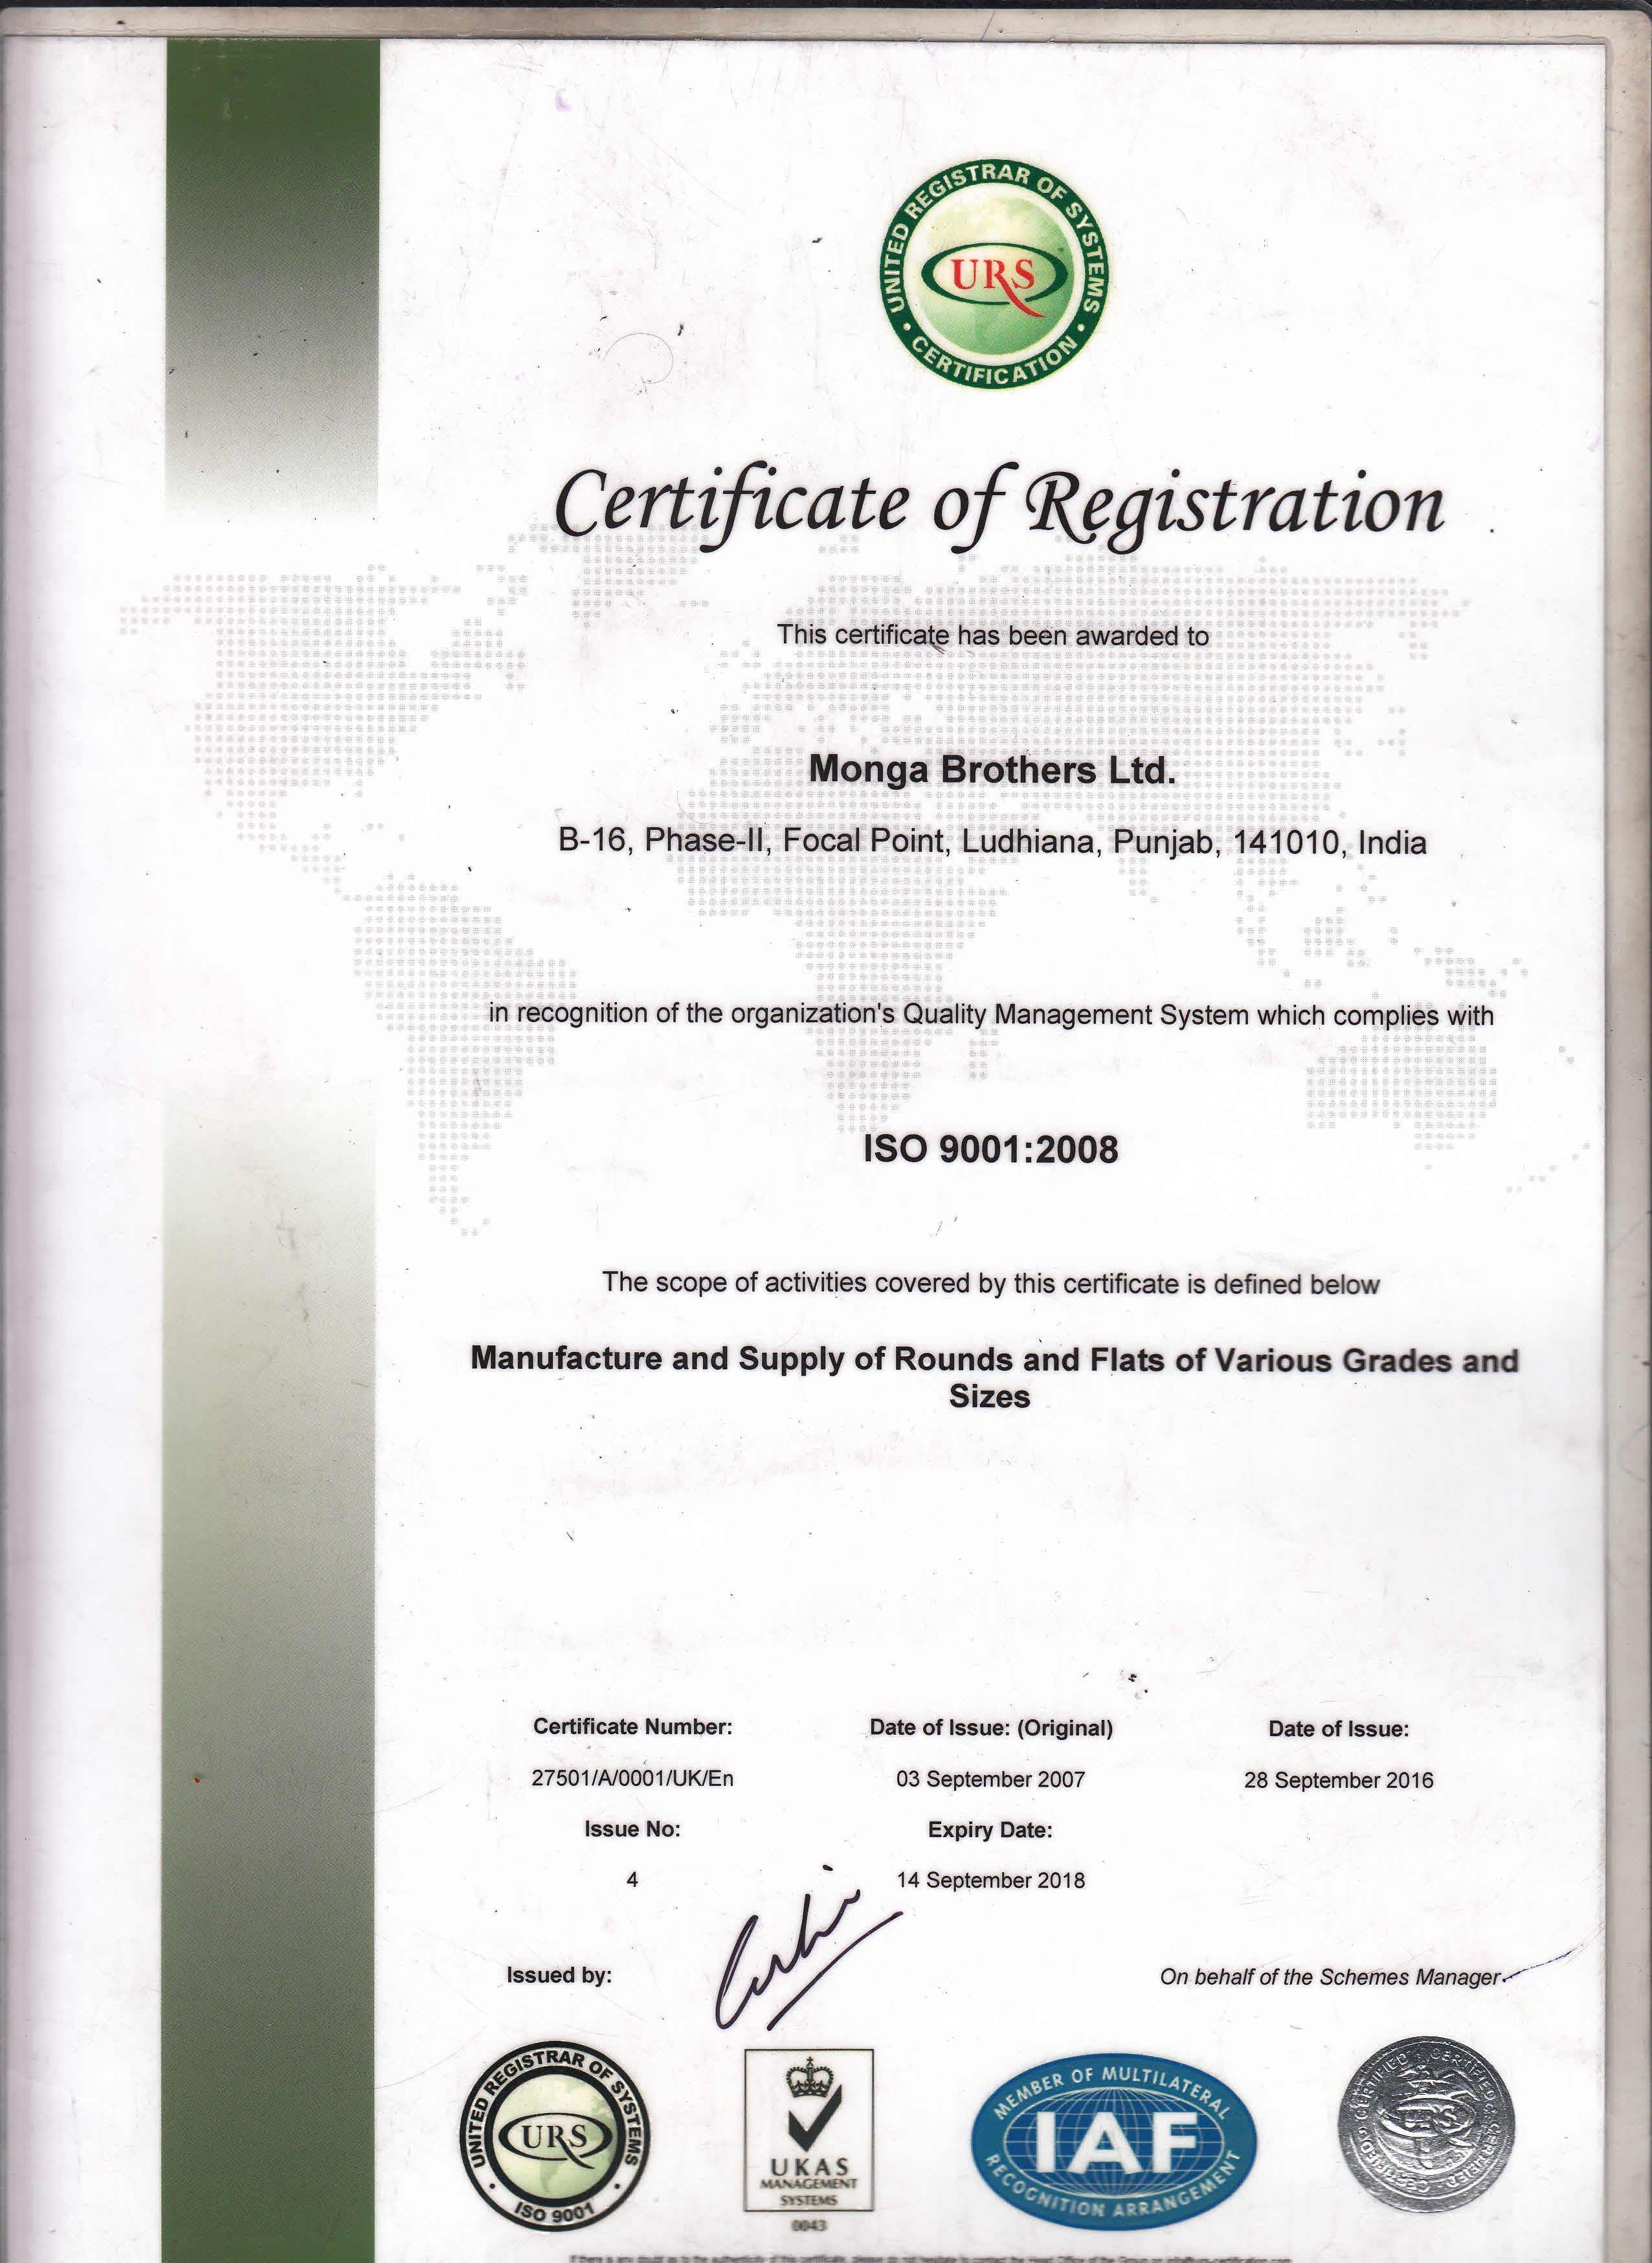 Monga Brothers Certificates 9001:2008